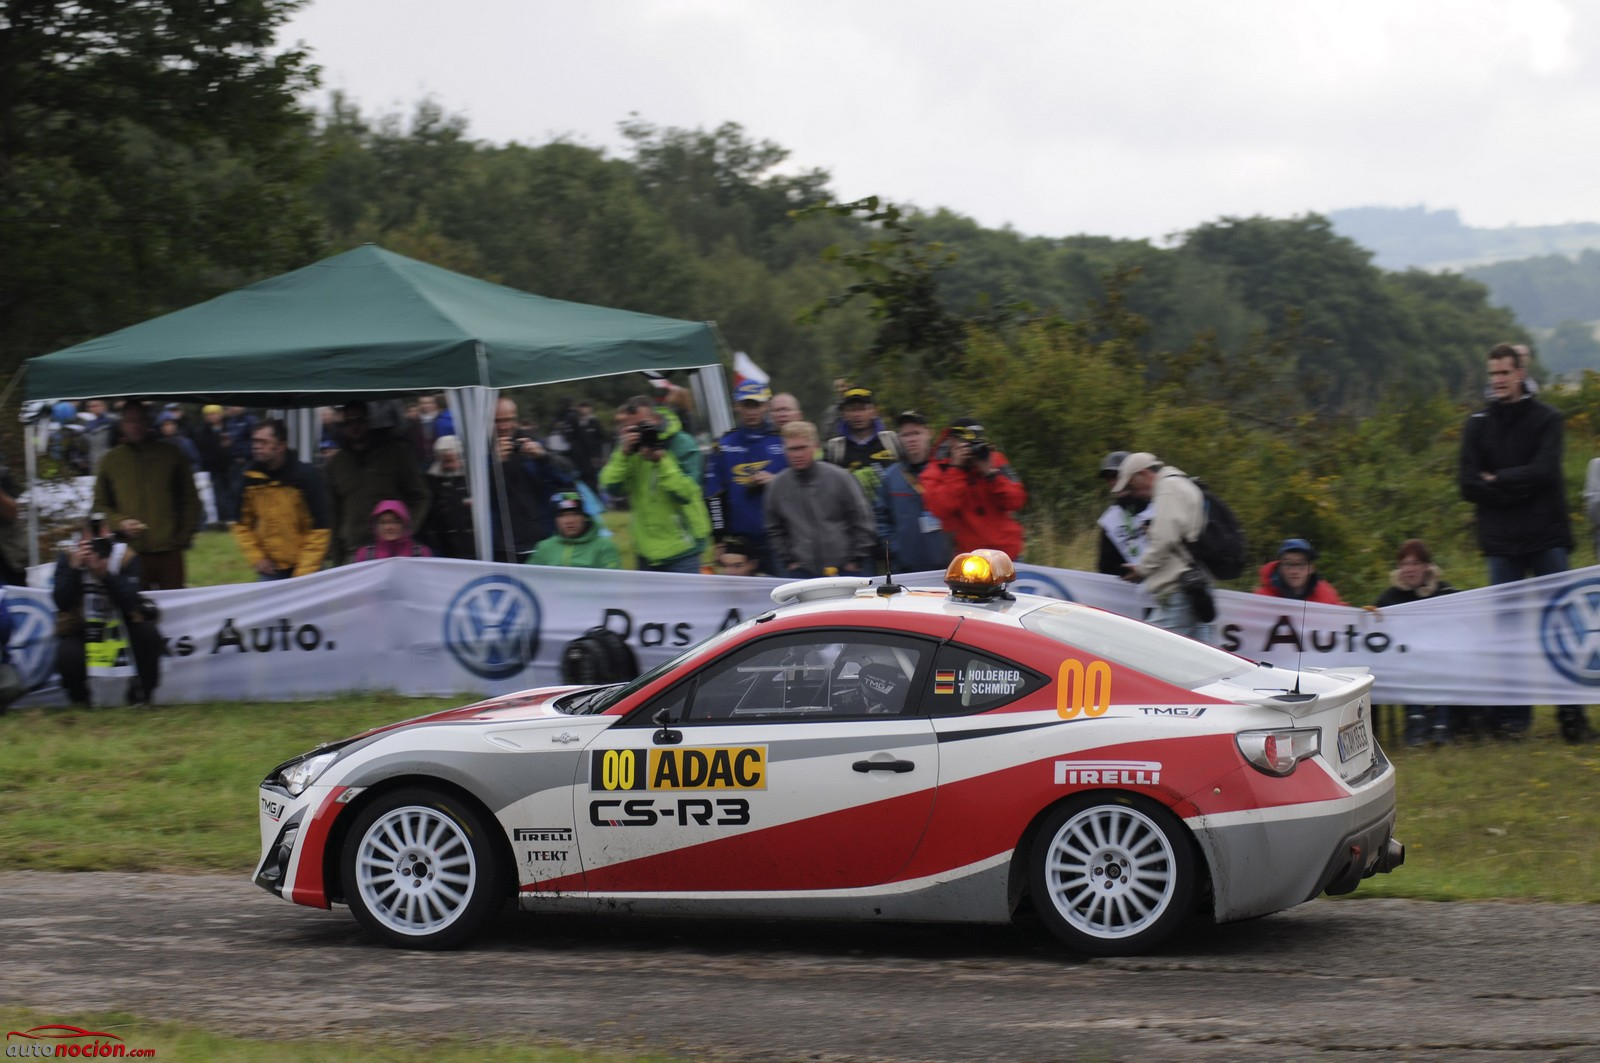 Toyota-GT86-CS-R3-rally-car-36